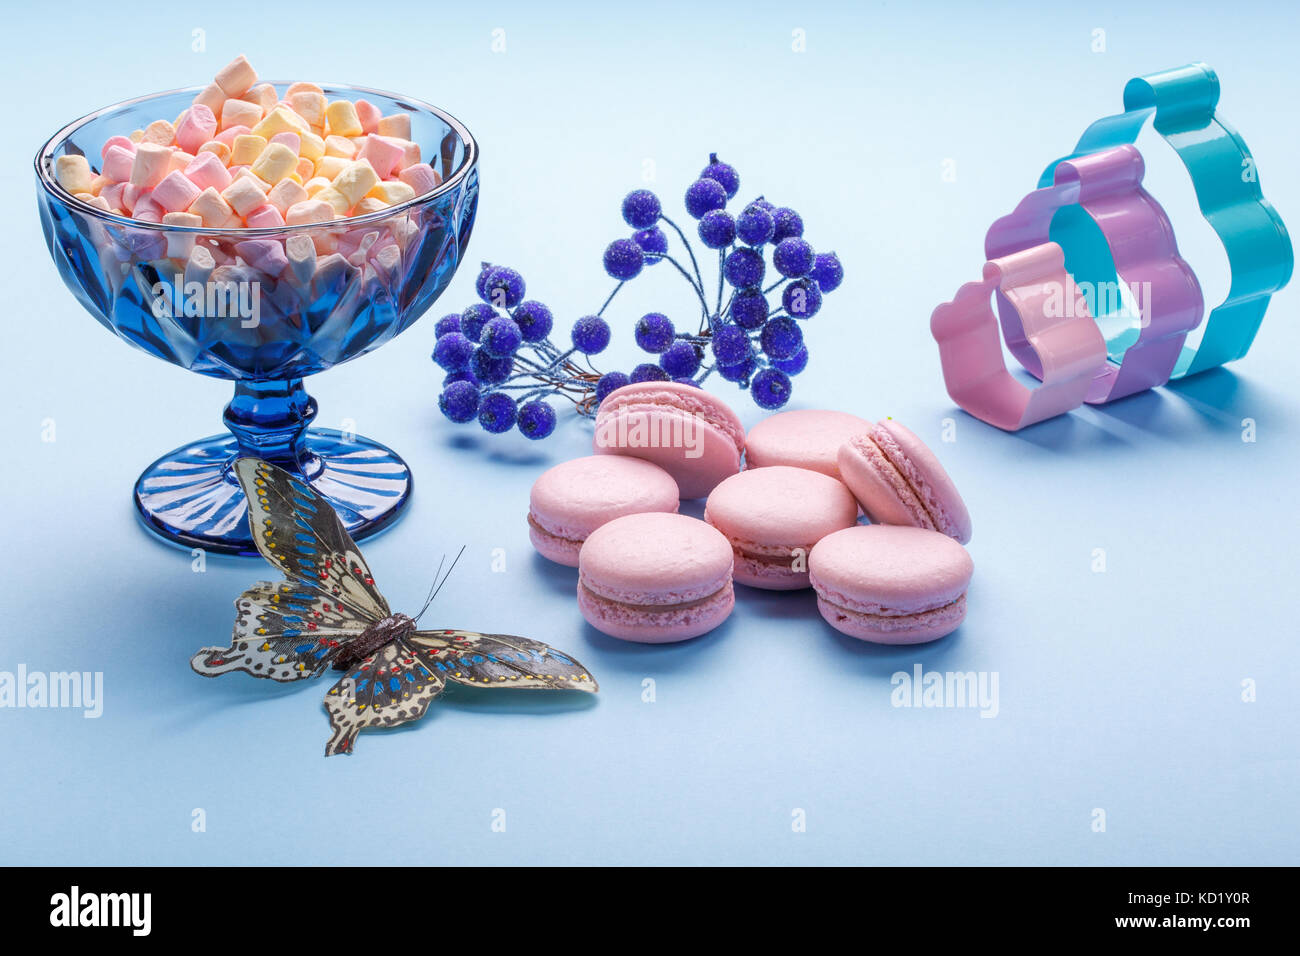 Macaroon cakes with colorful fluffy marshmallows in blue vase over blue background. - Stock Image